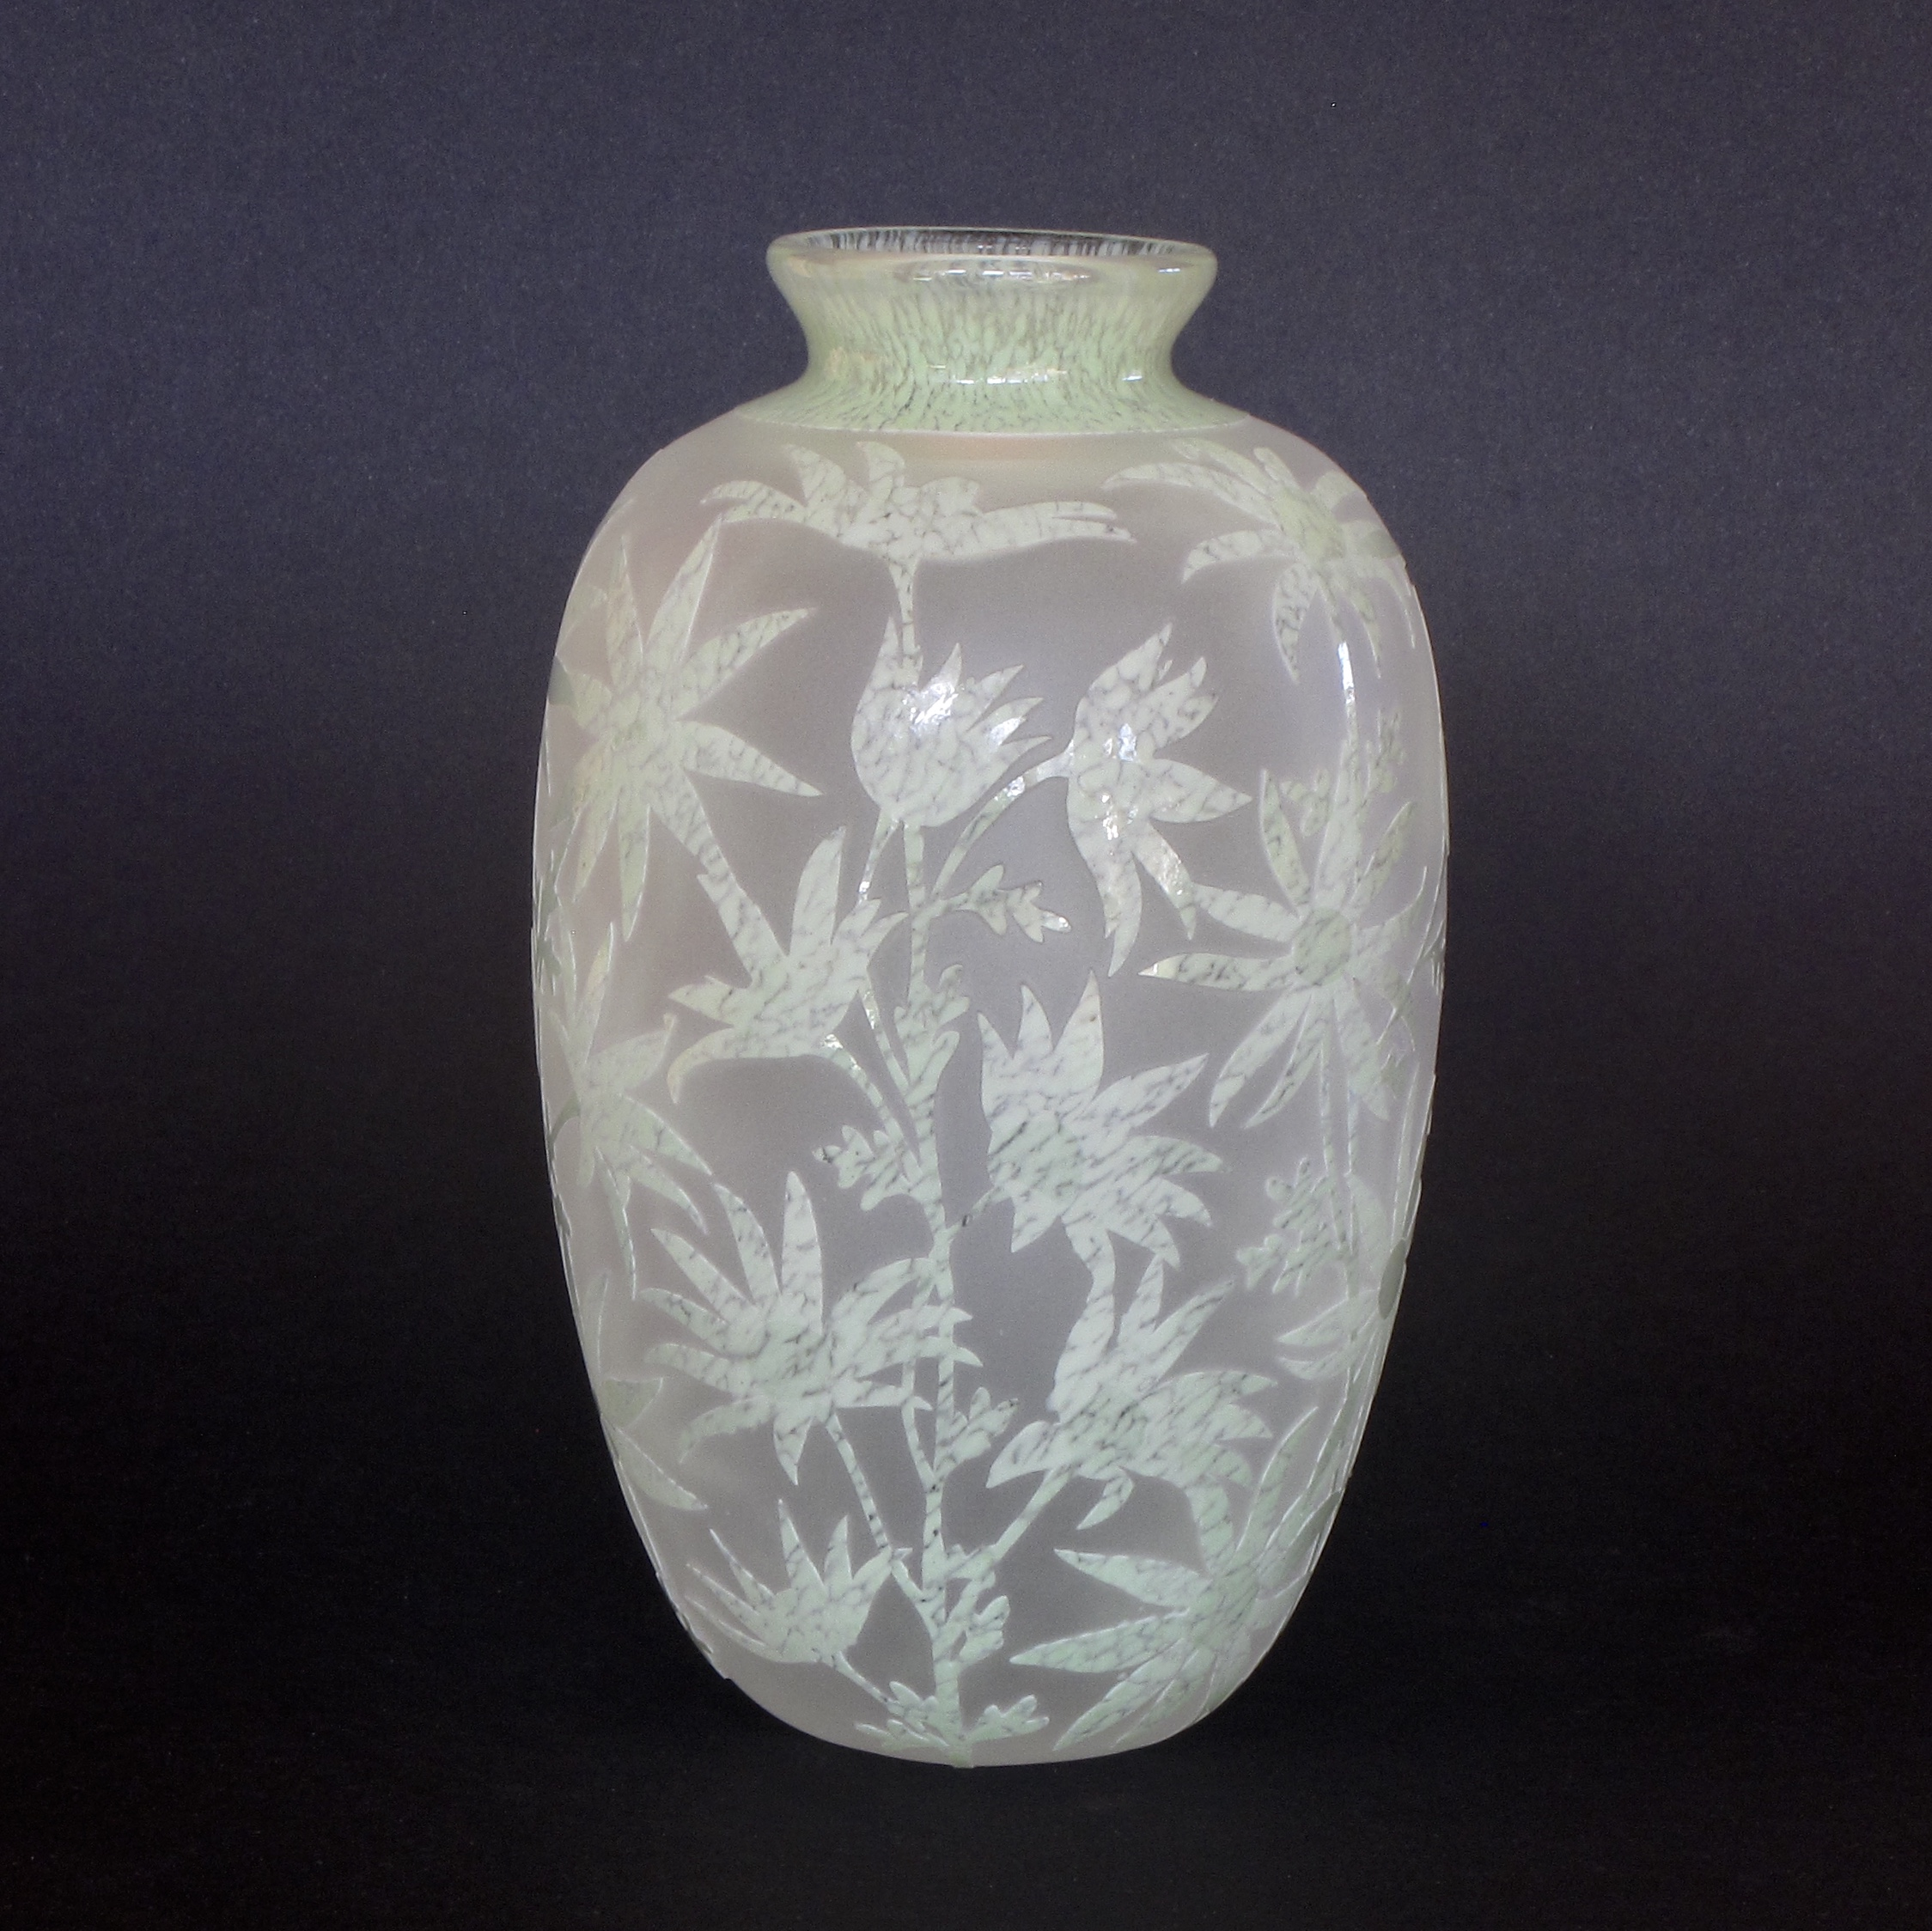 Flannel Flower vase by Amanda Louden. Blown and etched glass. H 16cm x W 9cm